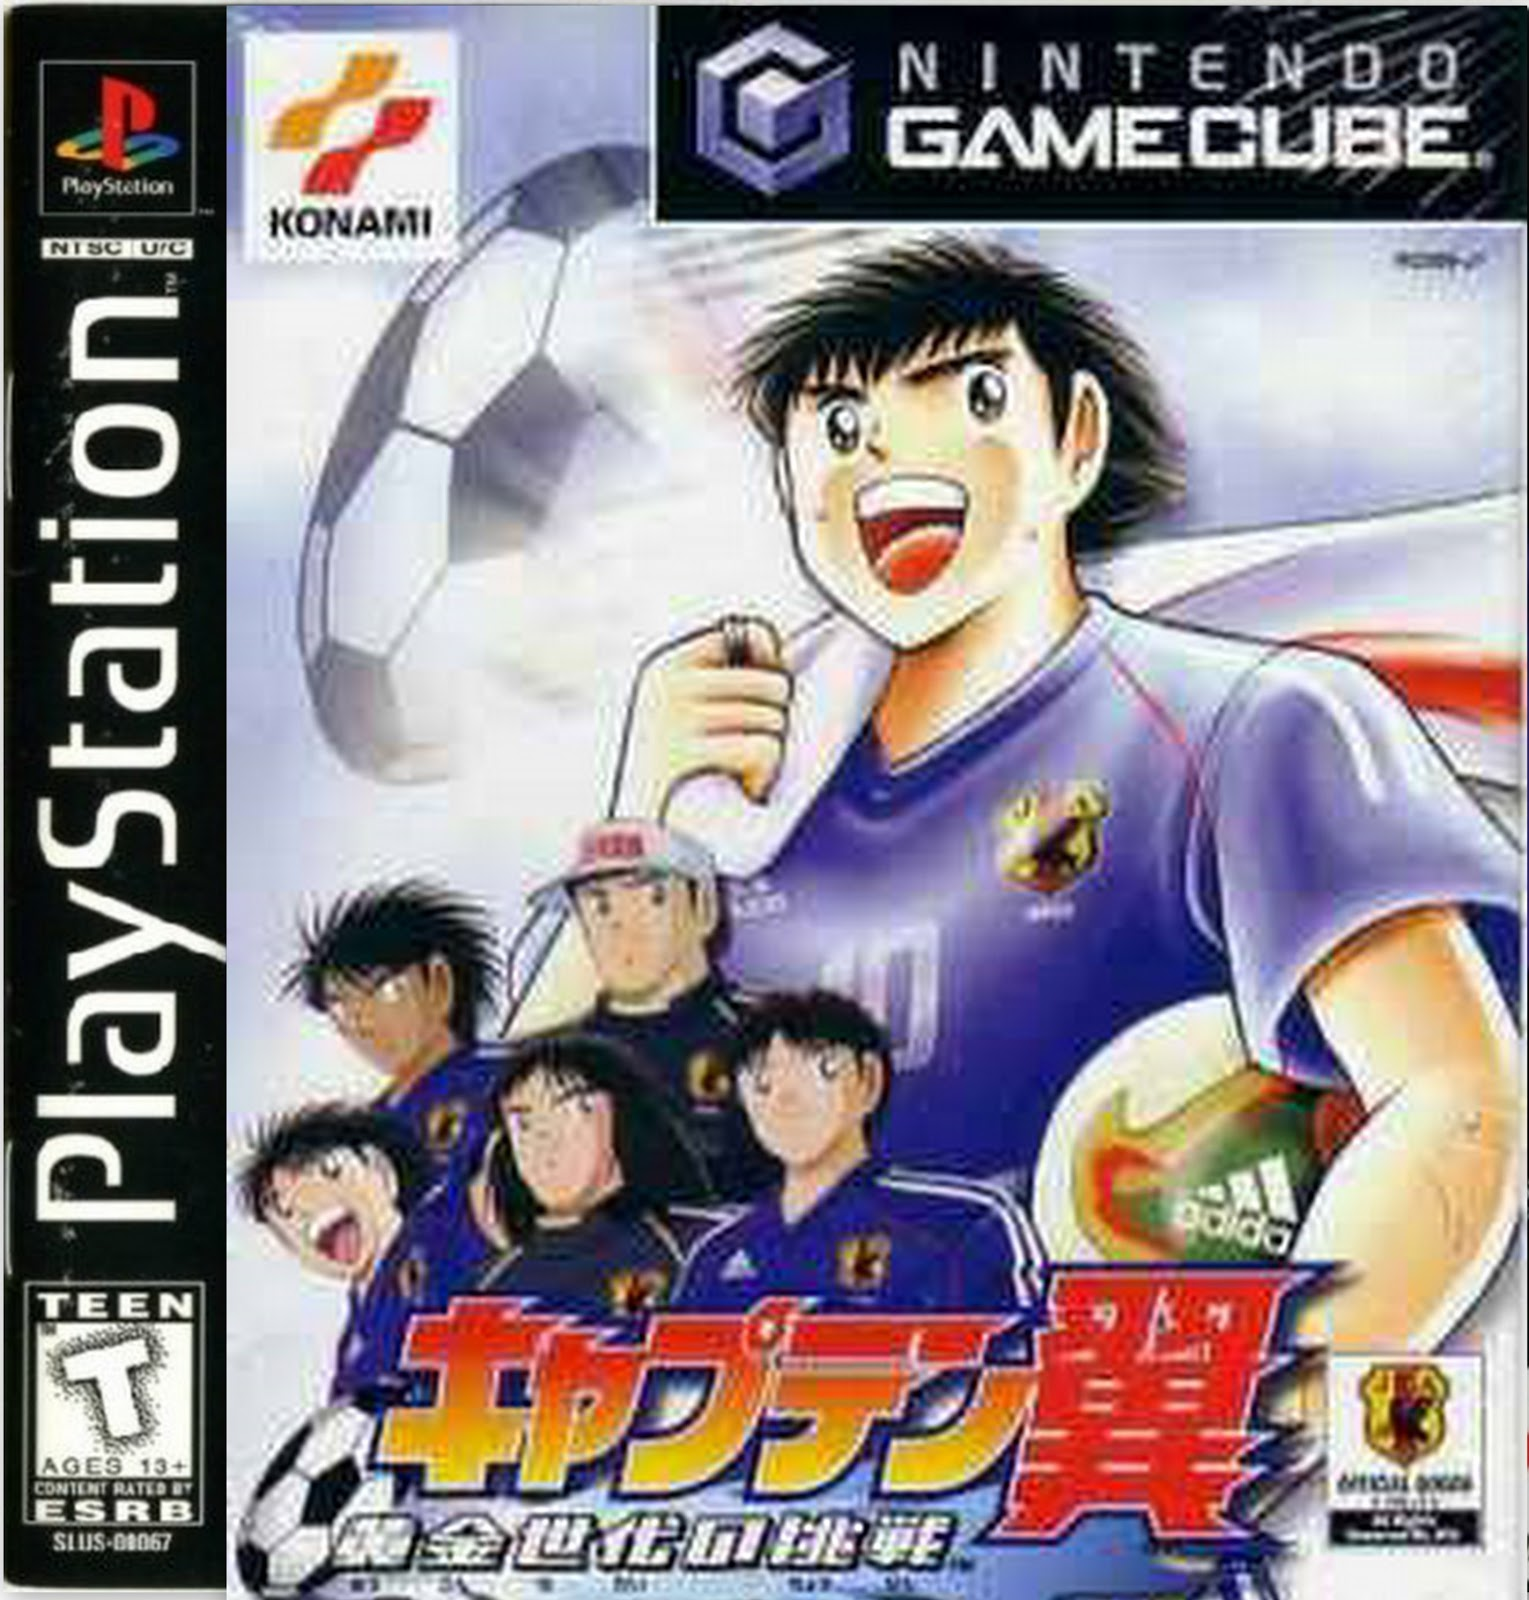 HIRRRS.blogspot.com: DOWNLOAD CAPTAIN TSUBASA ROAD TO 2002